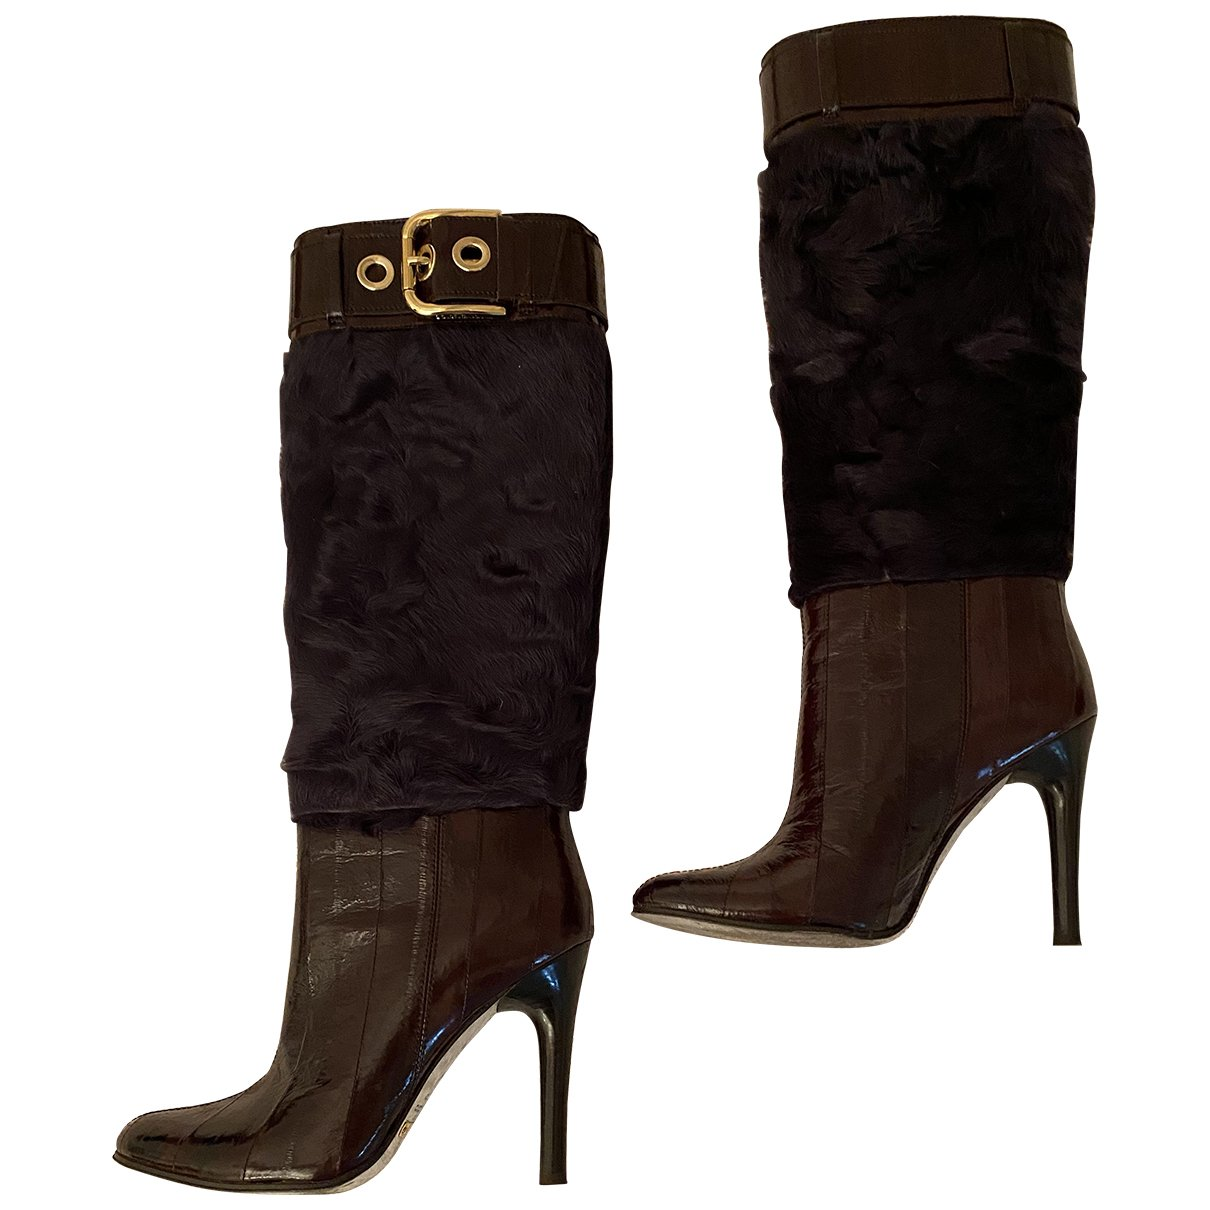 Dolce & Gabbana N Brown Leather Ankle boots for Women